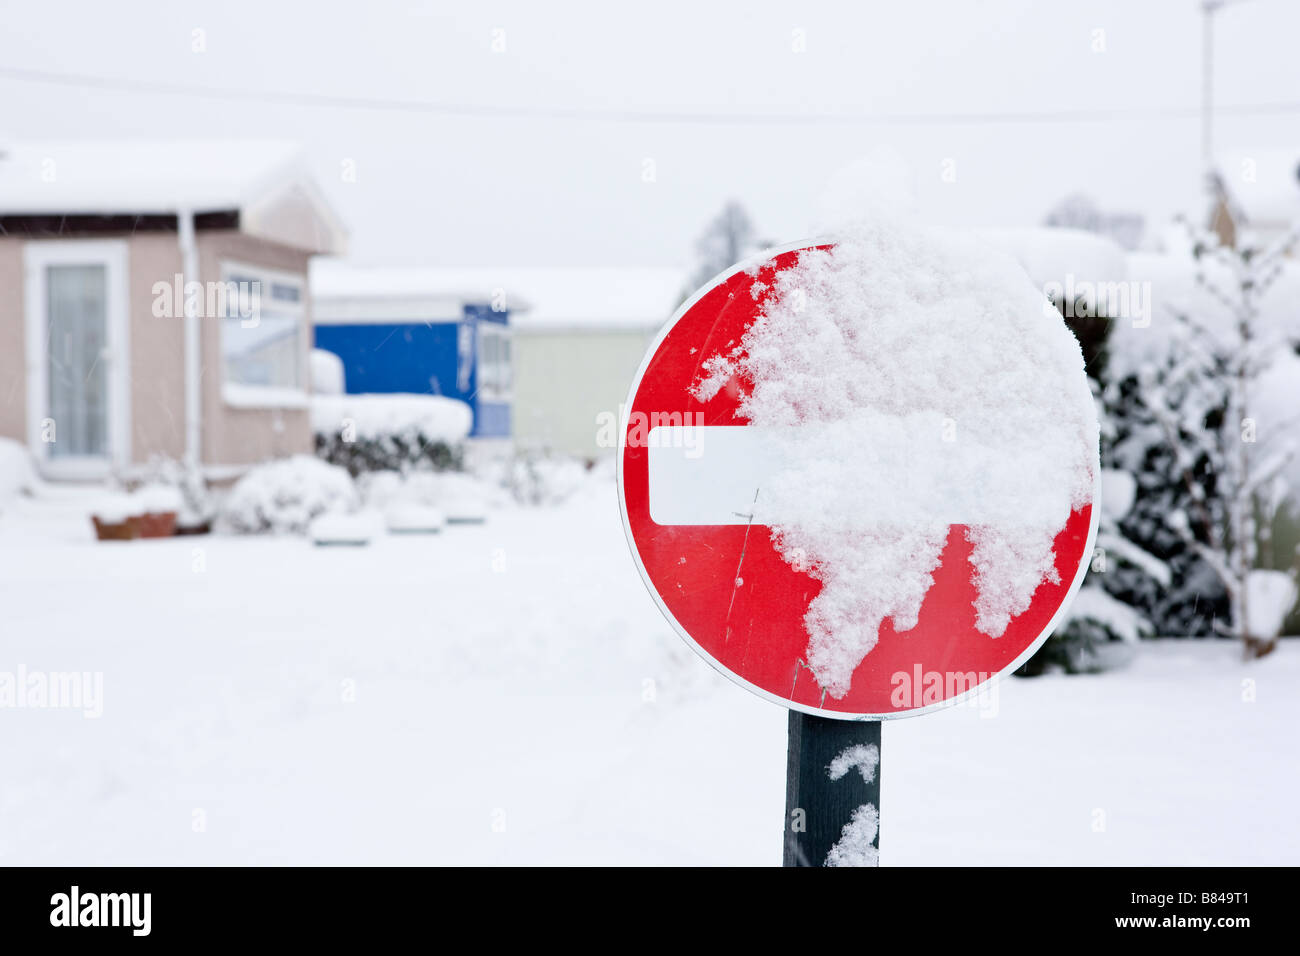 A no entry sign covered in snow - Stock Image